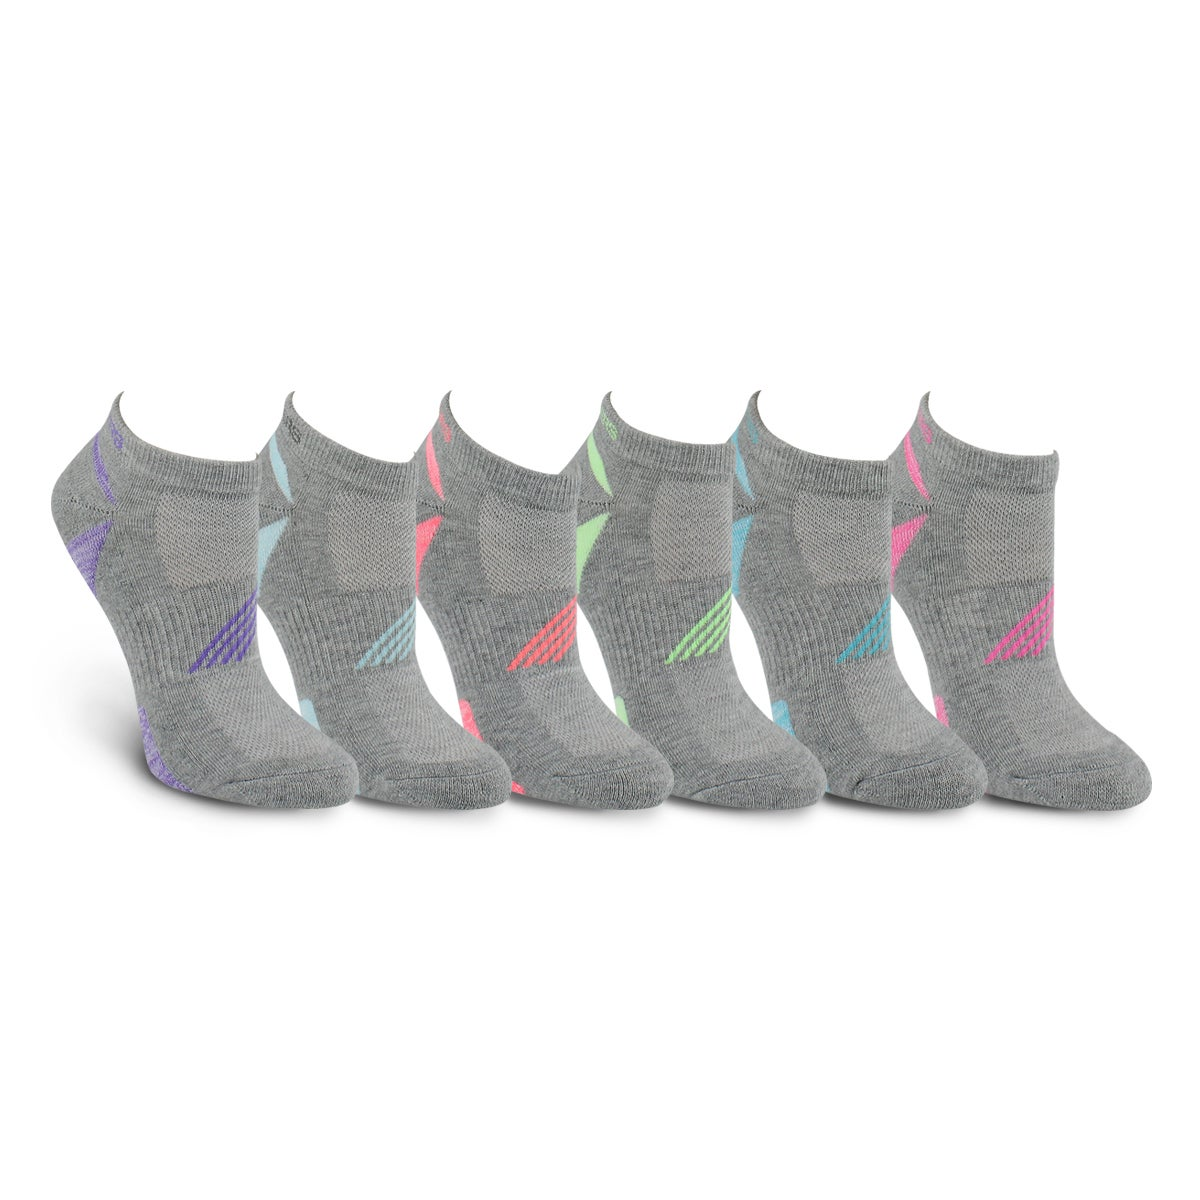 Lds LowCut HalfTerry gry mlti sock 6pk